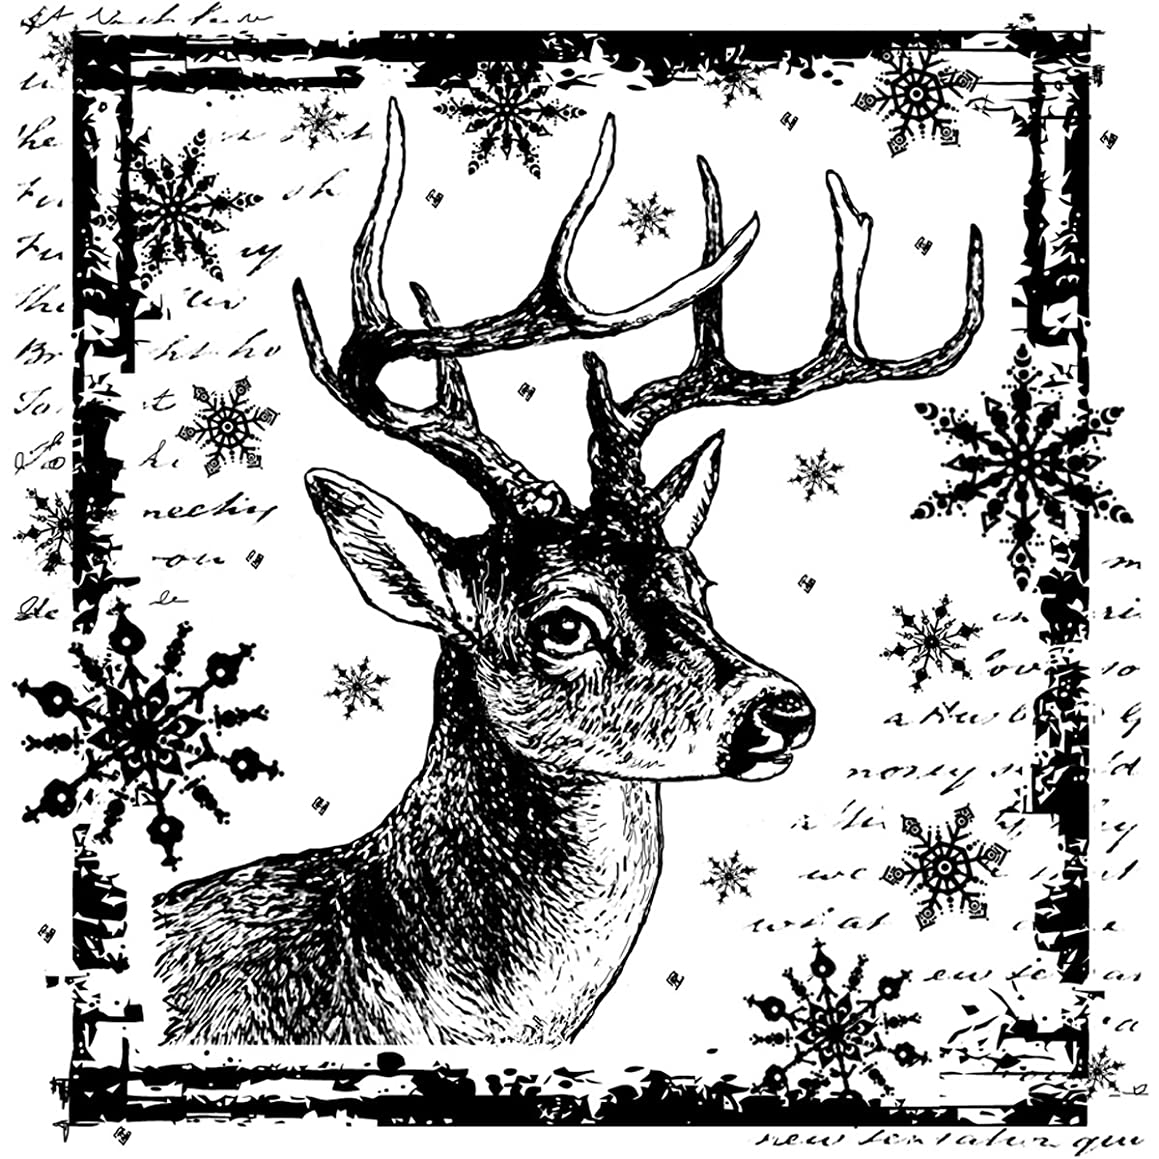 Crafty Individuals CI-332 Unmounted Rubber Stamp, Snowflake Rudolph